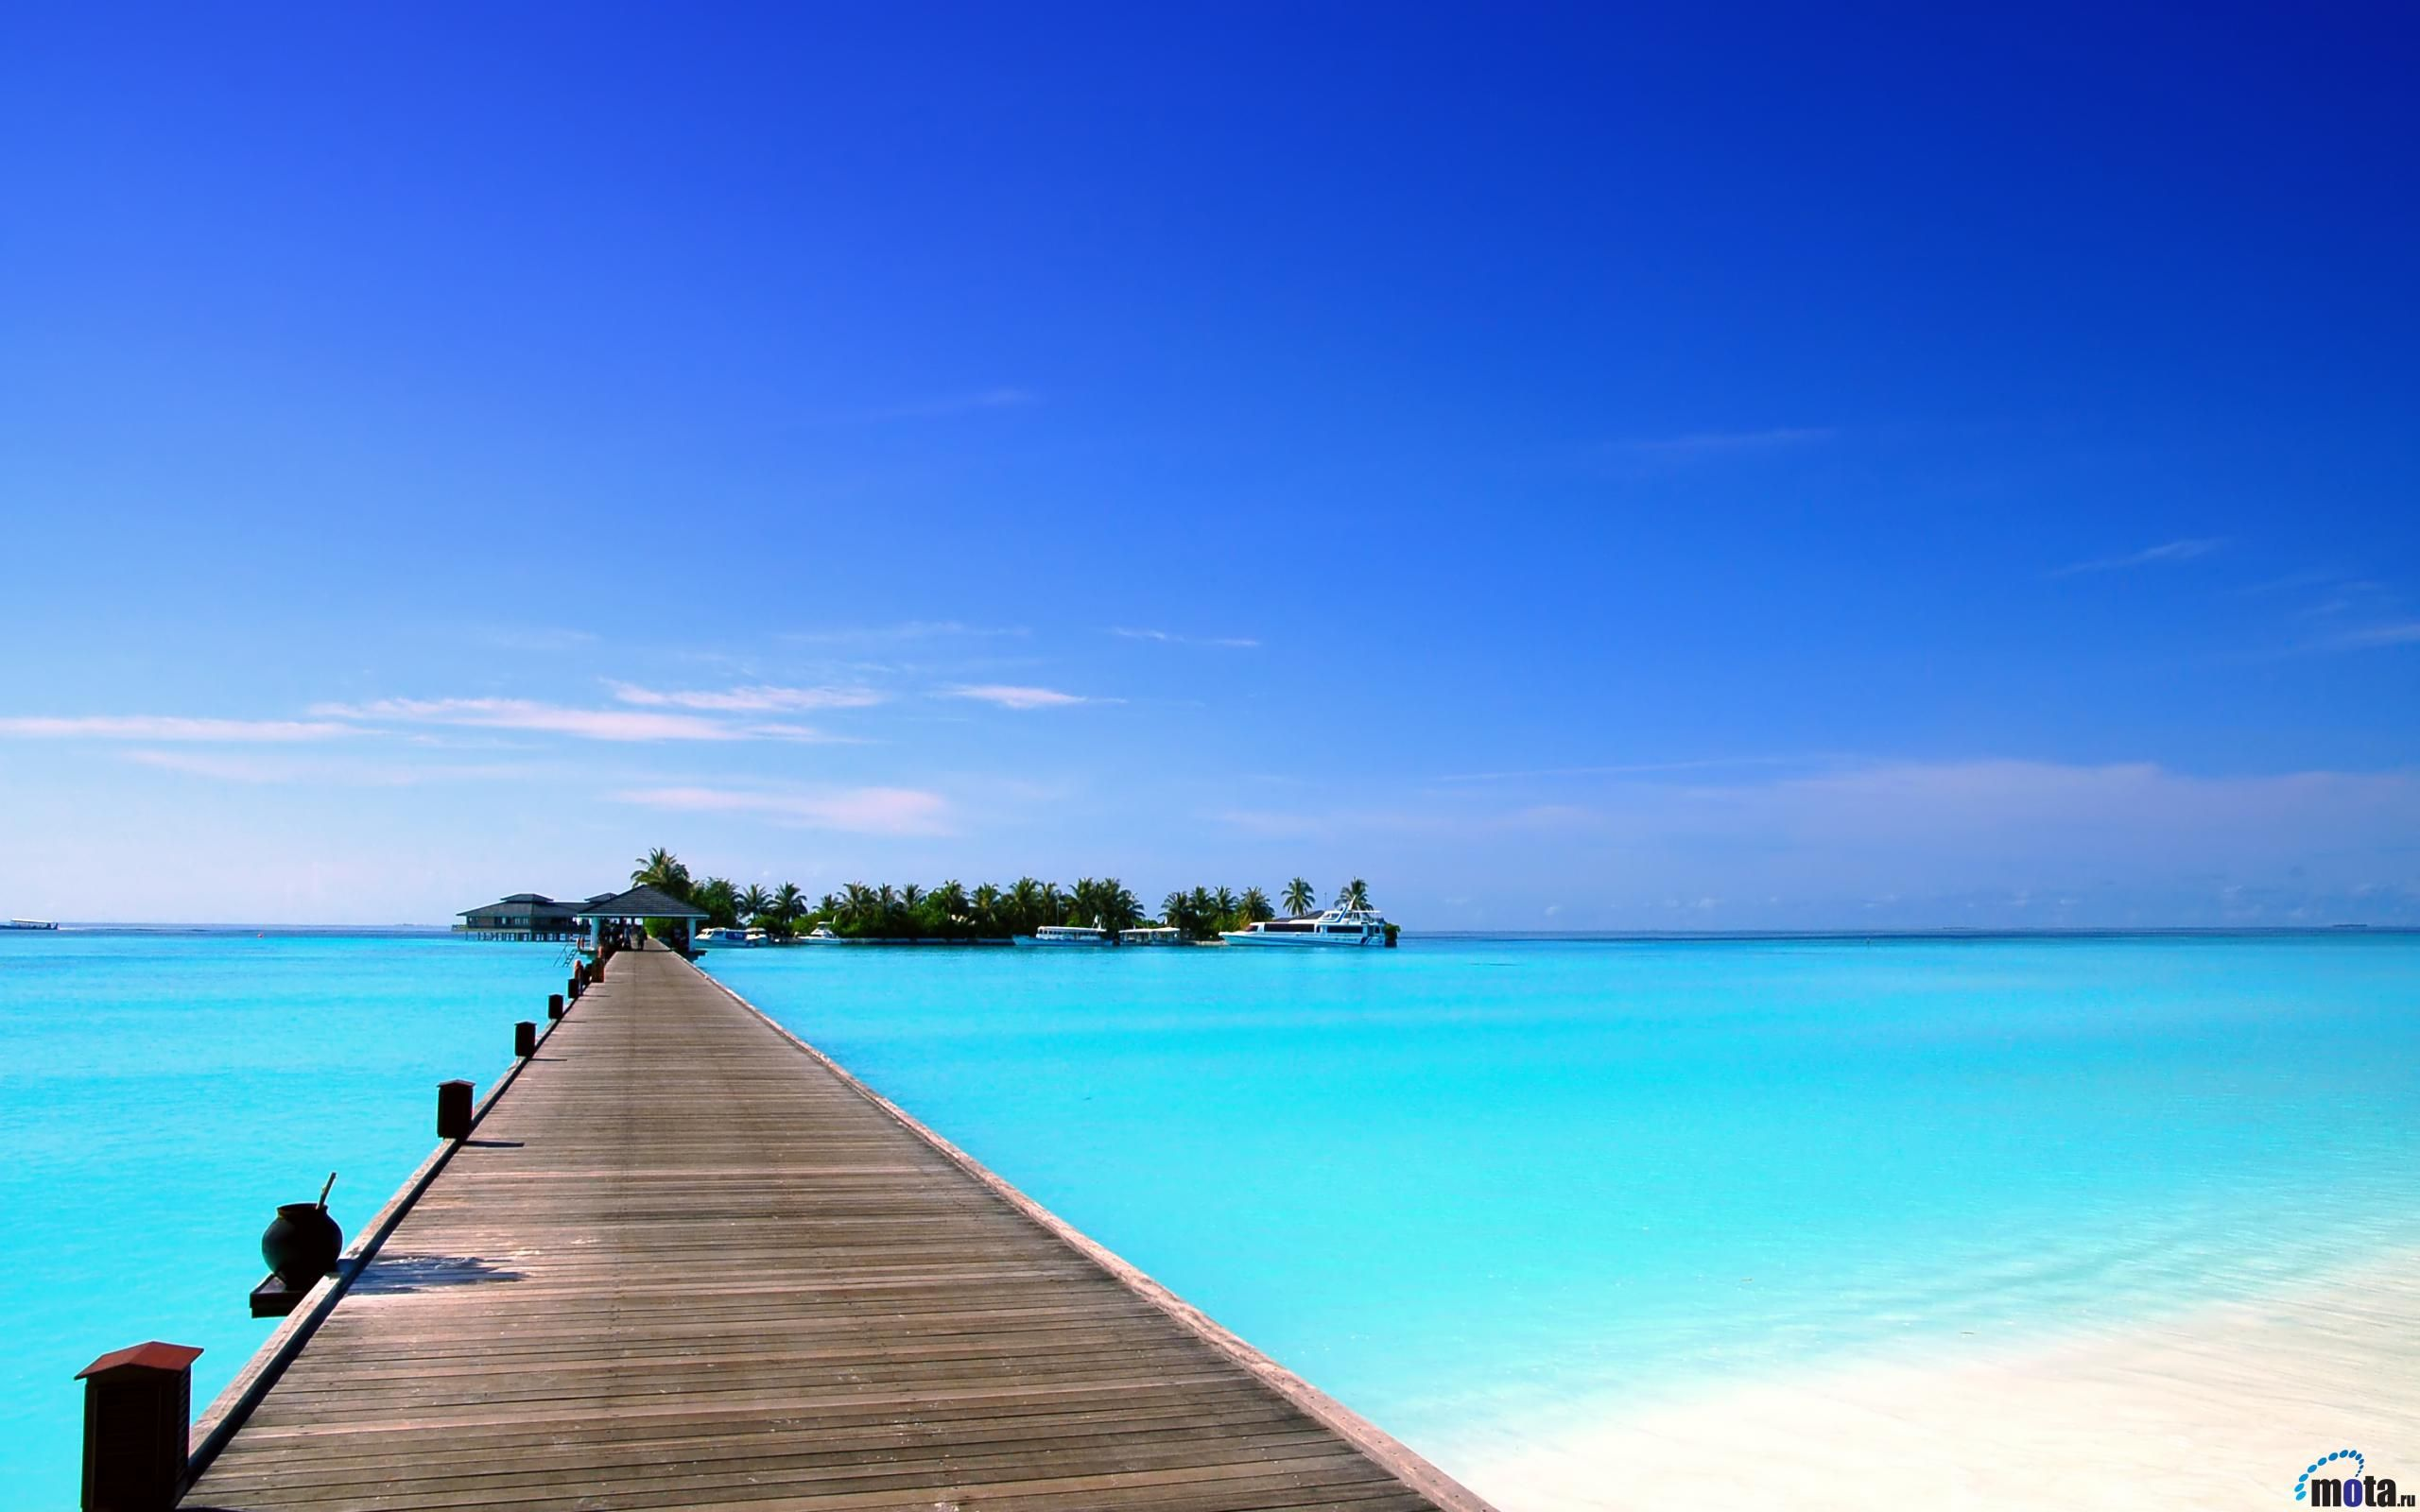 Desktop Wallpapers Sun Island Hotel Maldives Islands